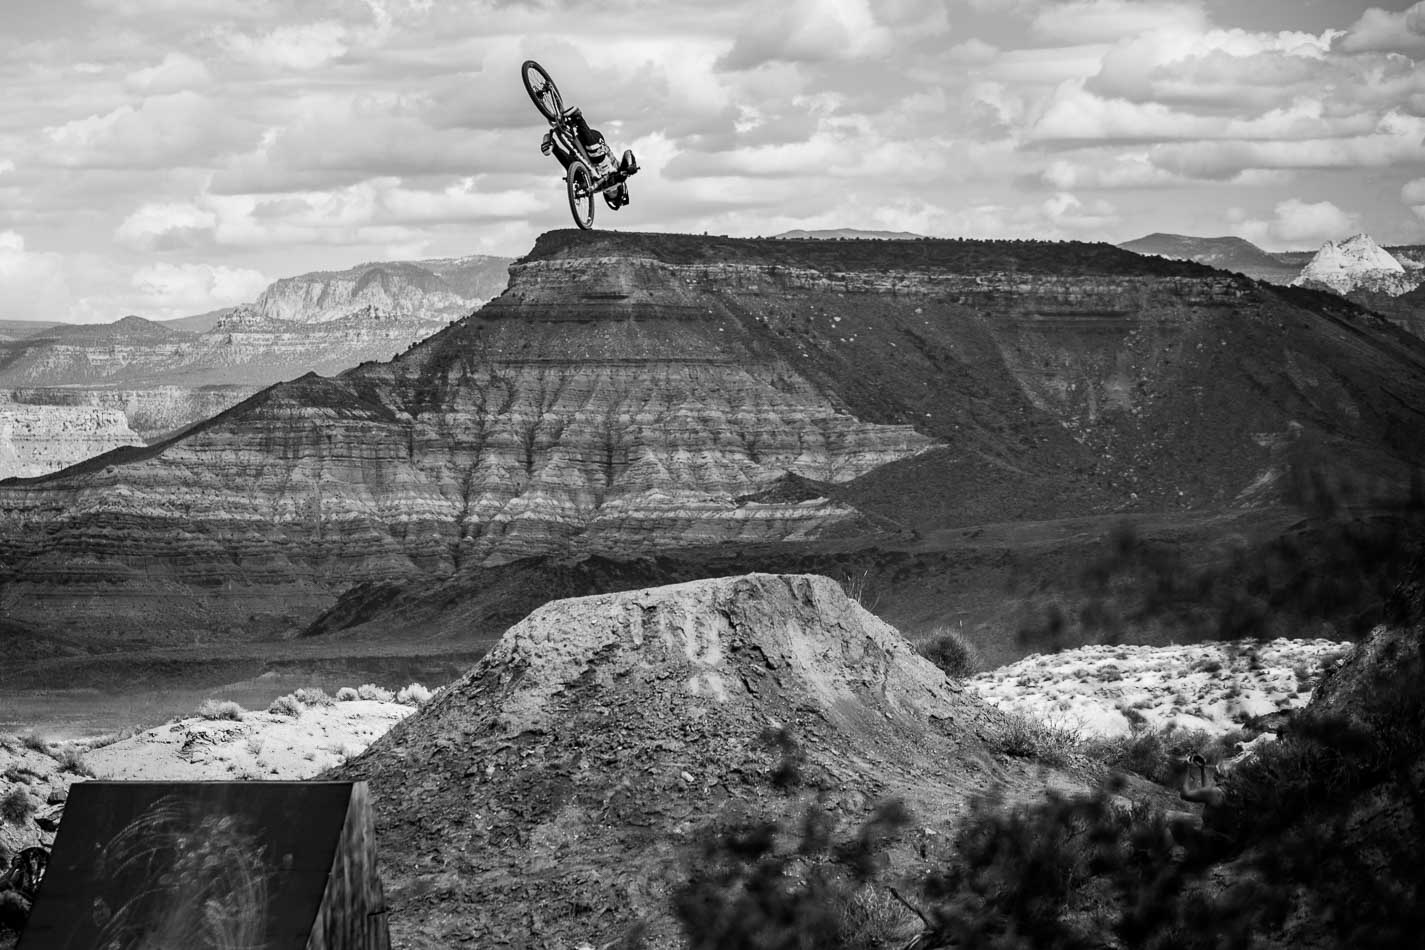 First-place qualifier Brett Rheeder made his line look like his favorite local trail, capping off a seemingly effortless run with a gargantuan backflip that seemed to last forever.